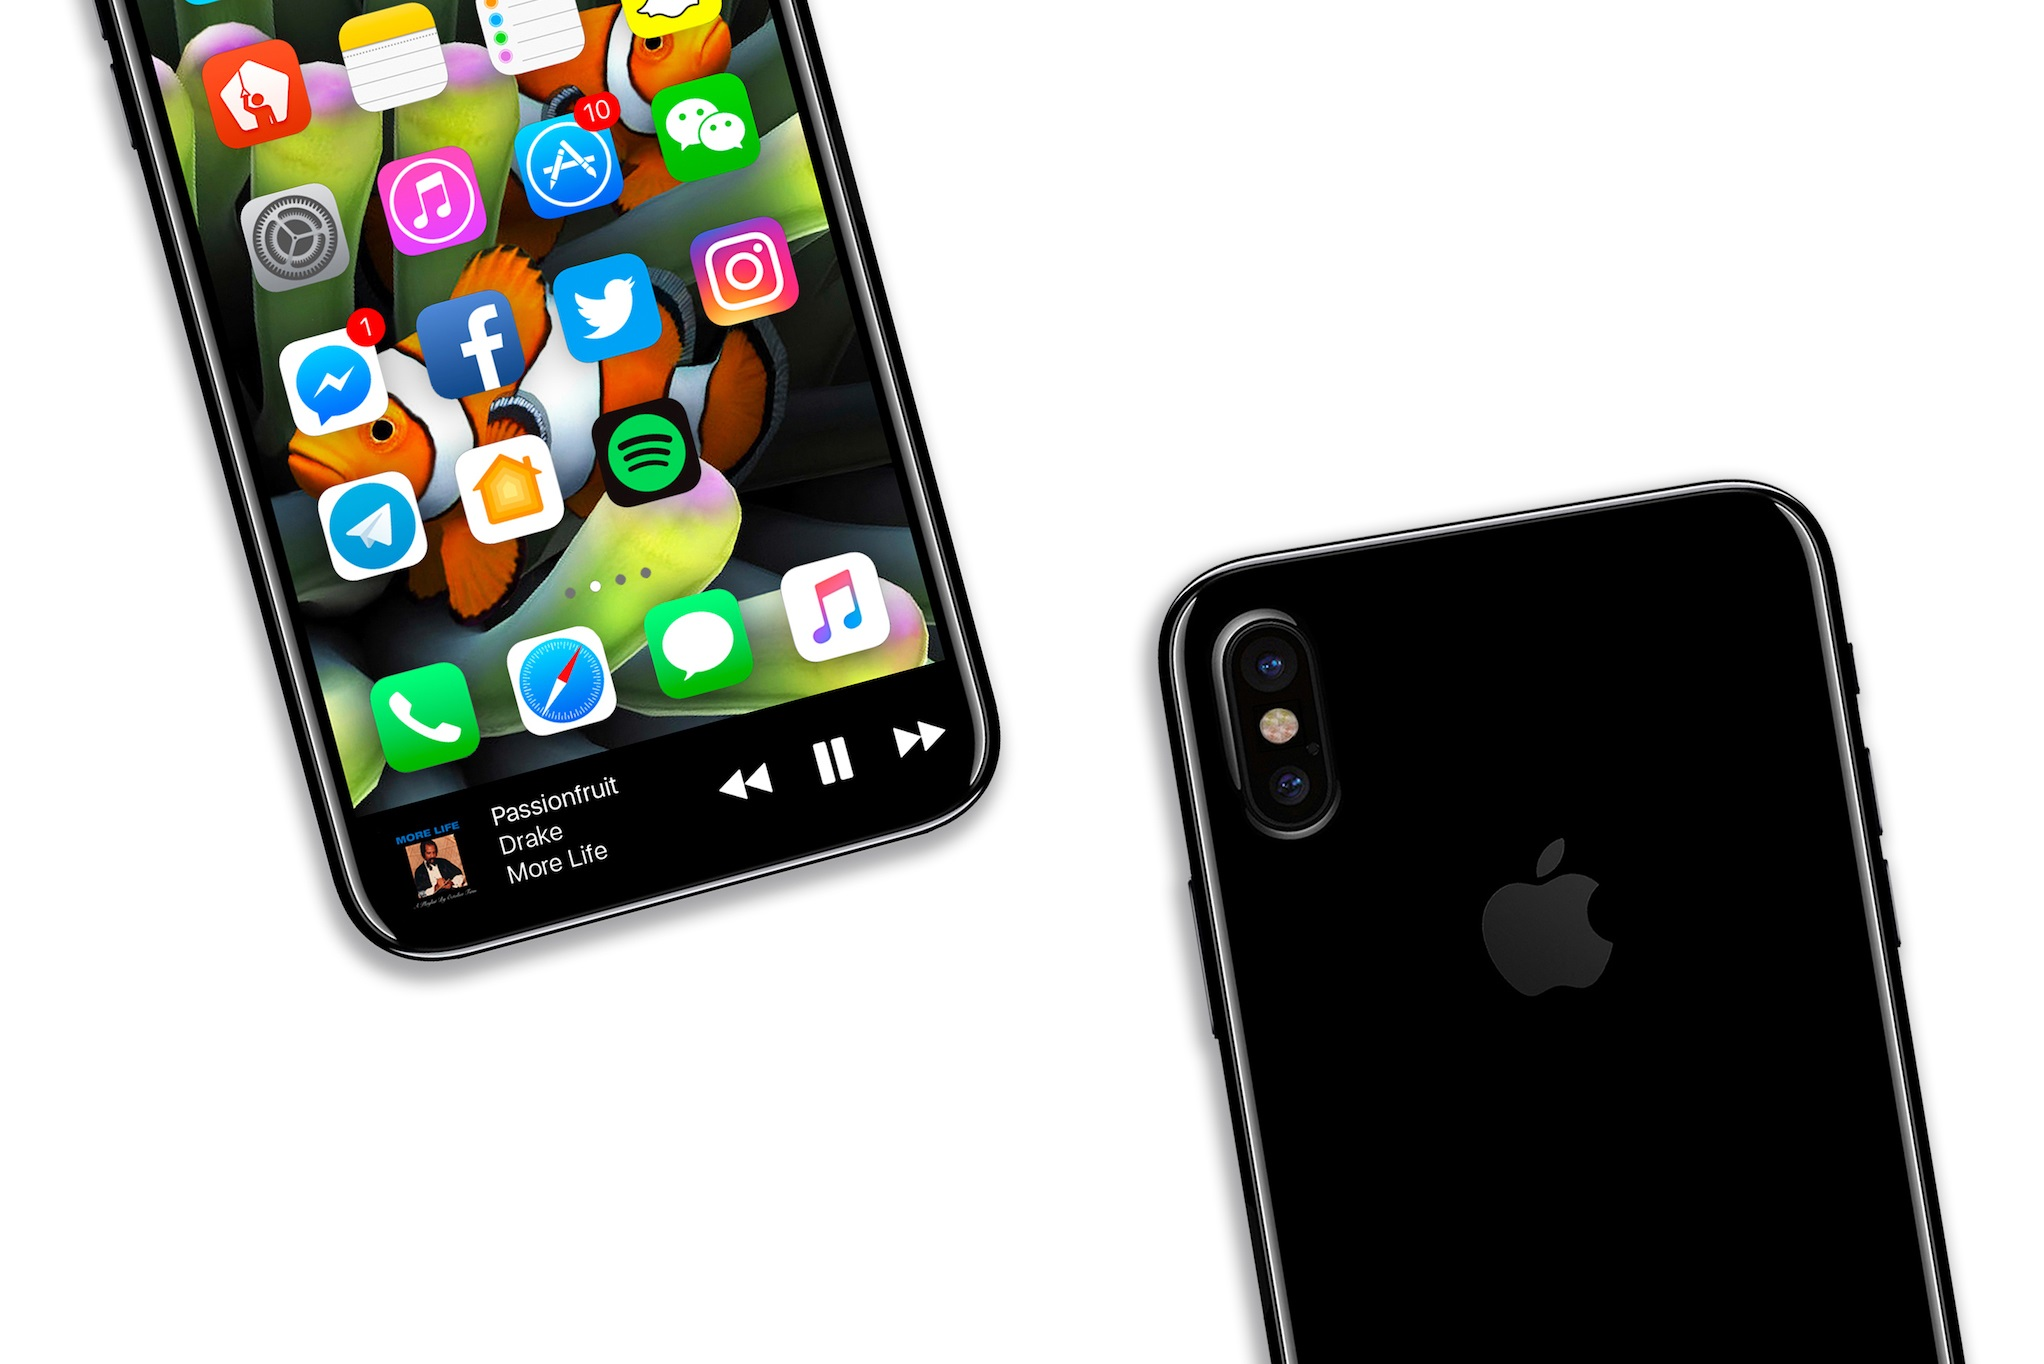 iPhone 8 concept interfata urata 7